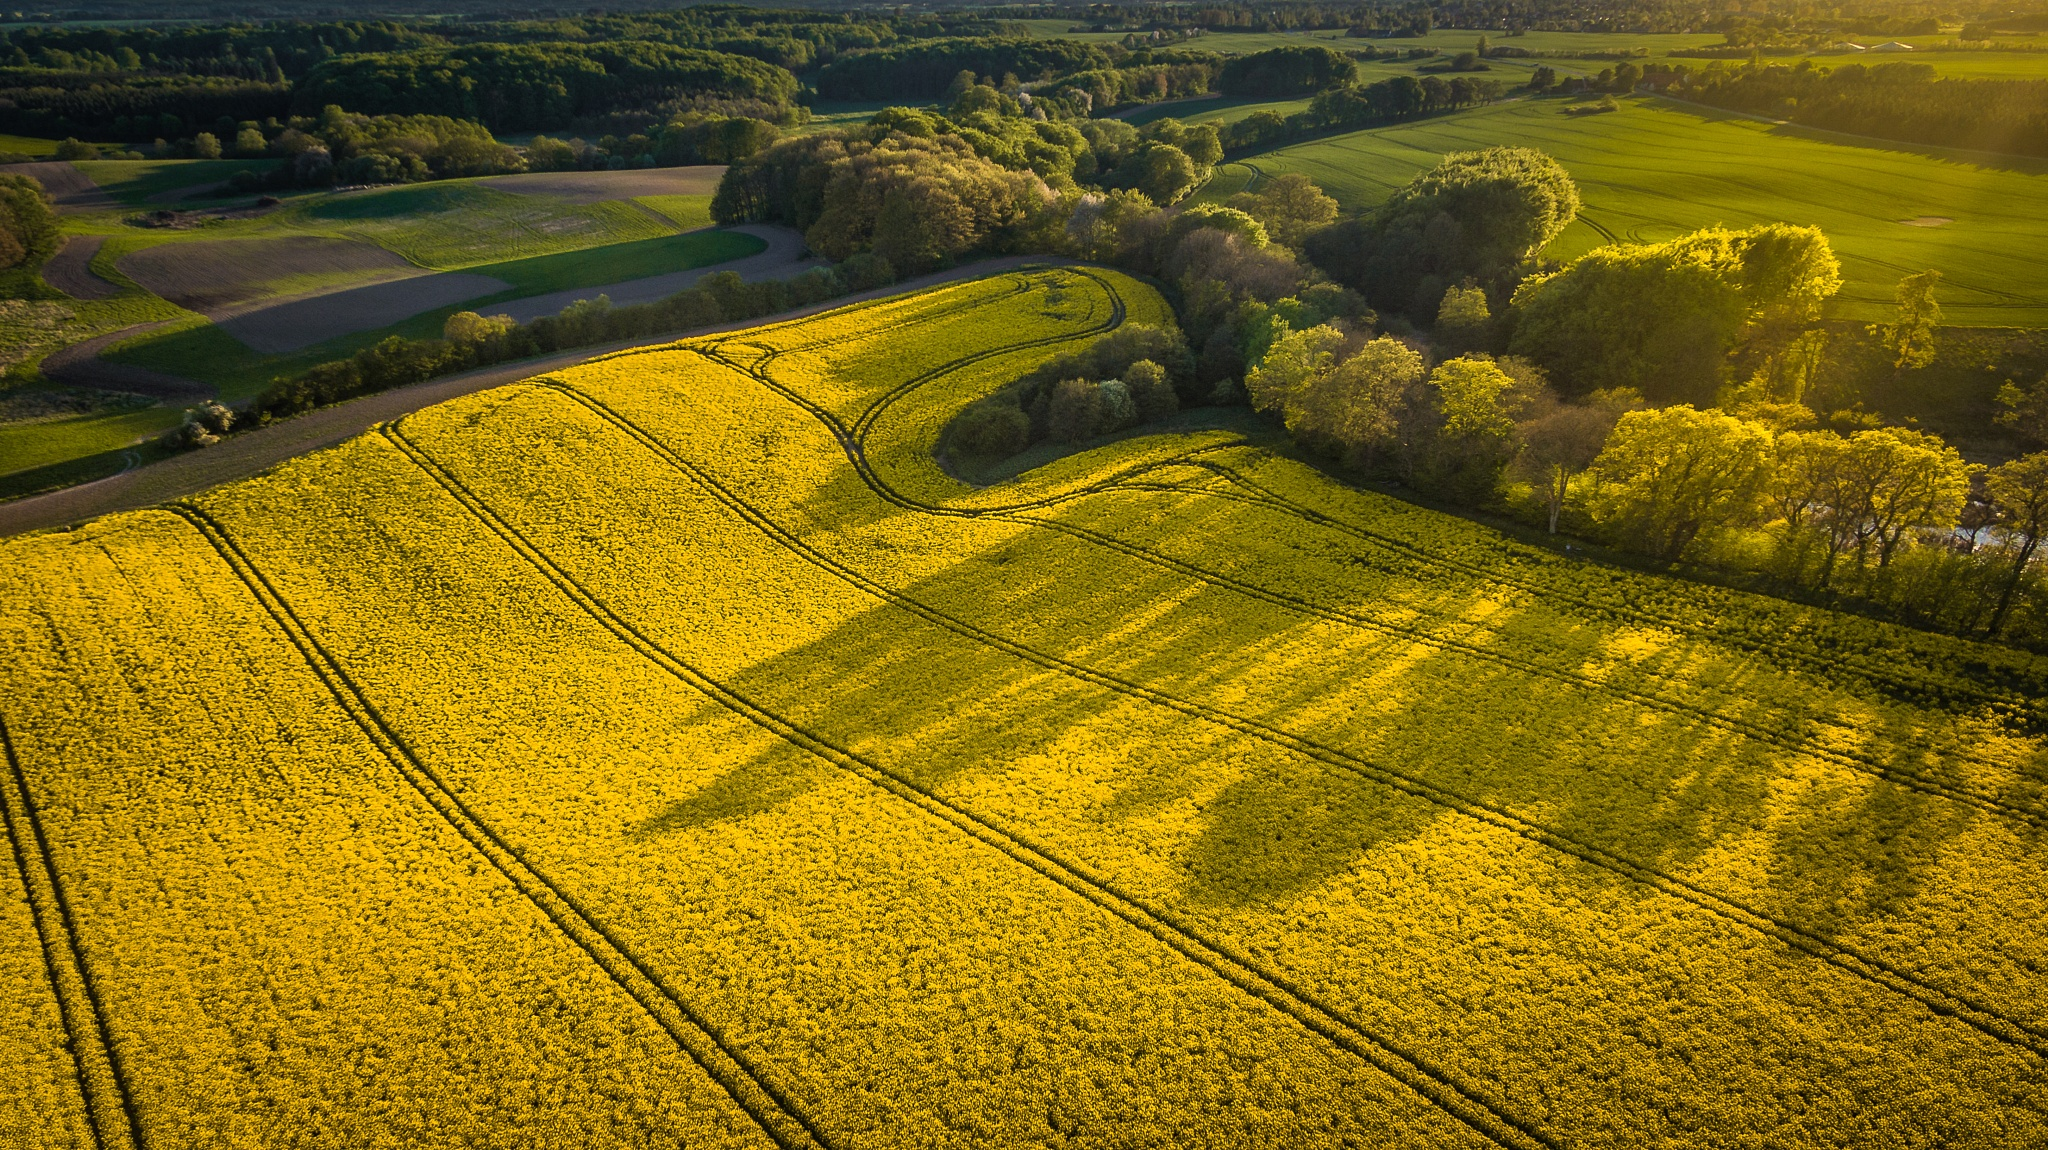 Sunset over rapeseed fields by Michael B. Rasmussen